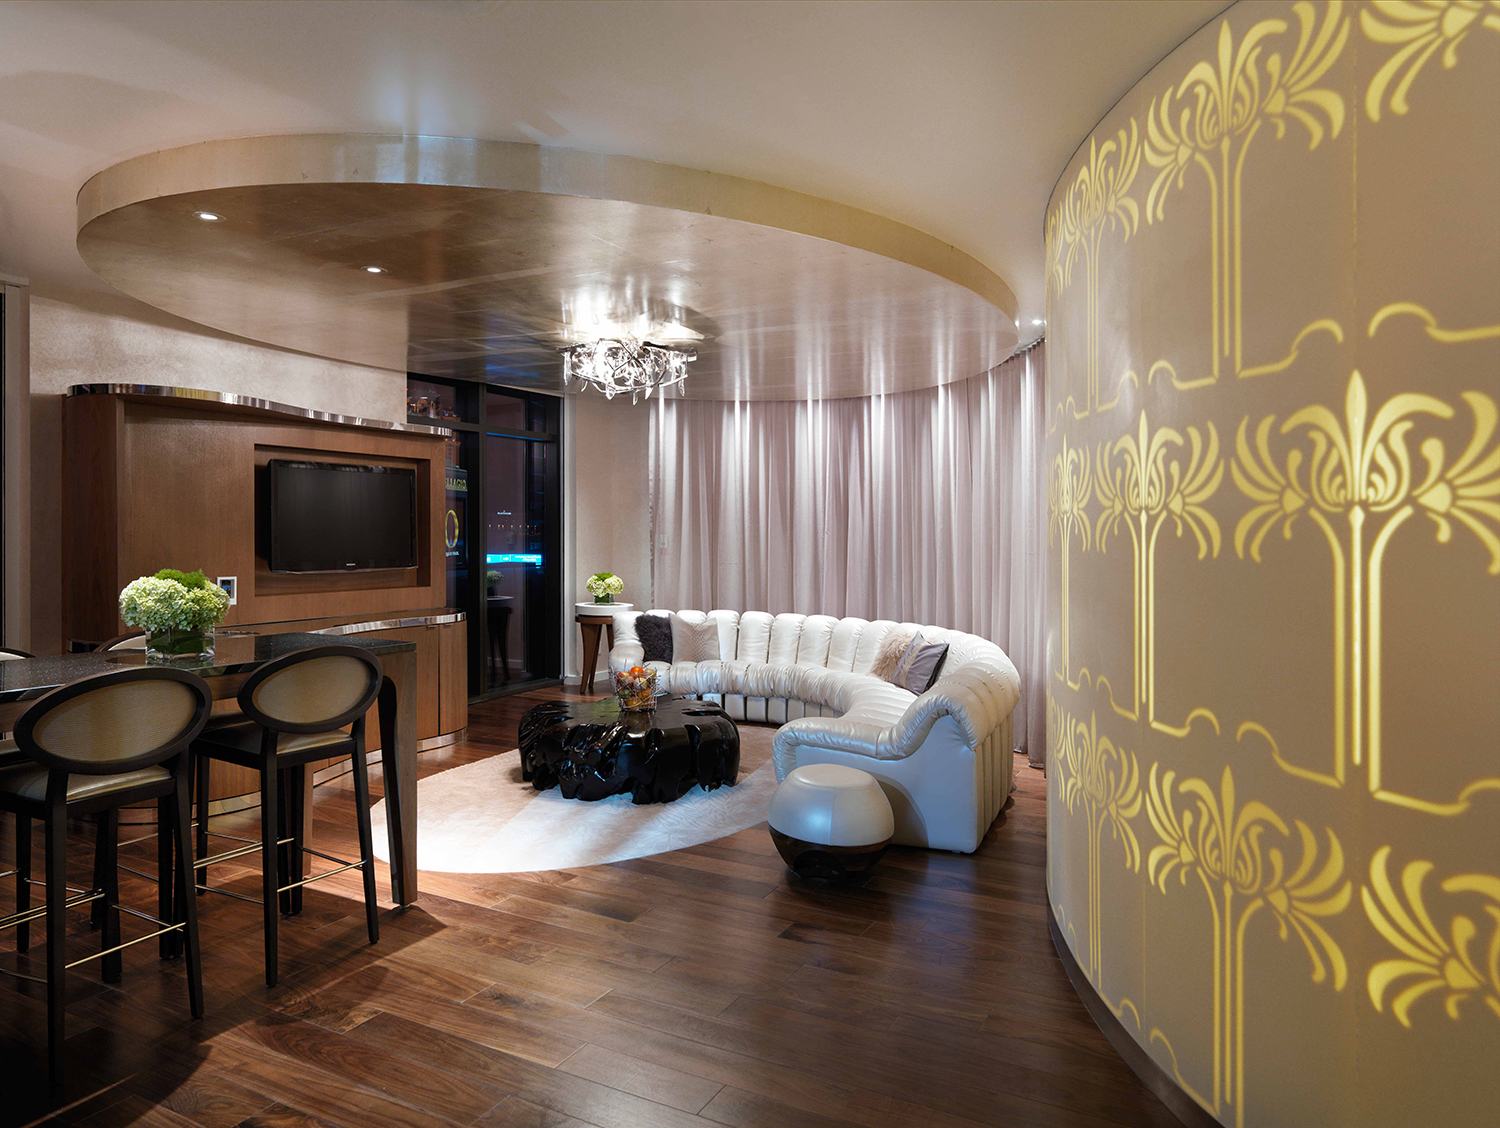 The Sahra Spa Penthouse Suite combines a well-appointed living and entertainment area with private spa accommodations.